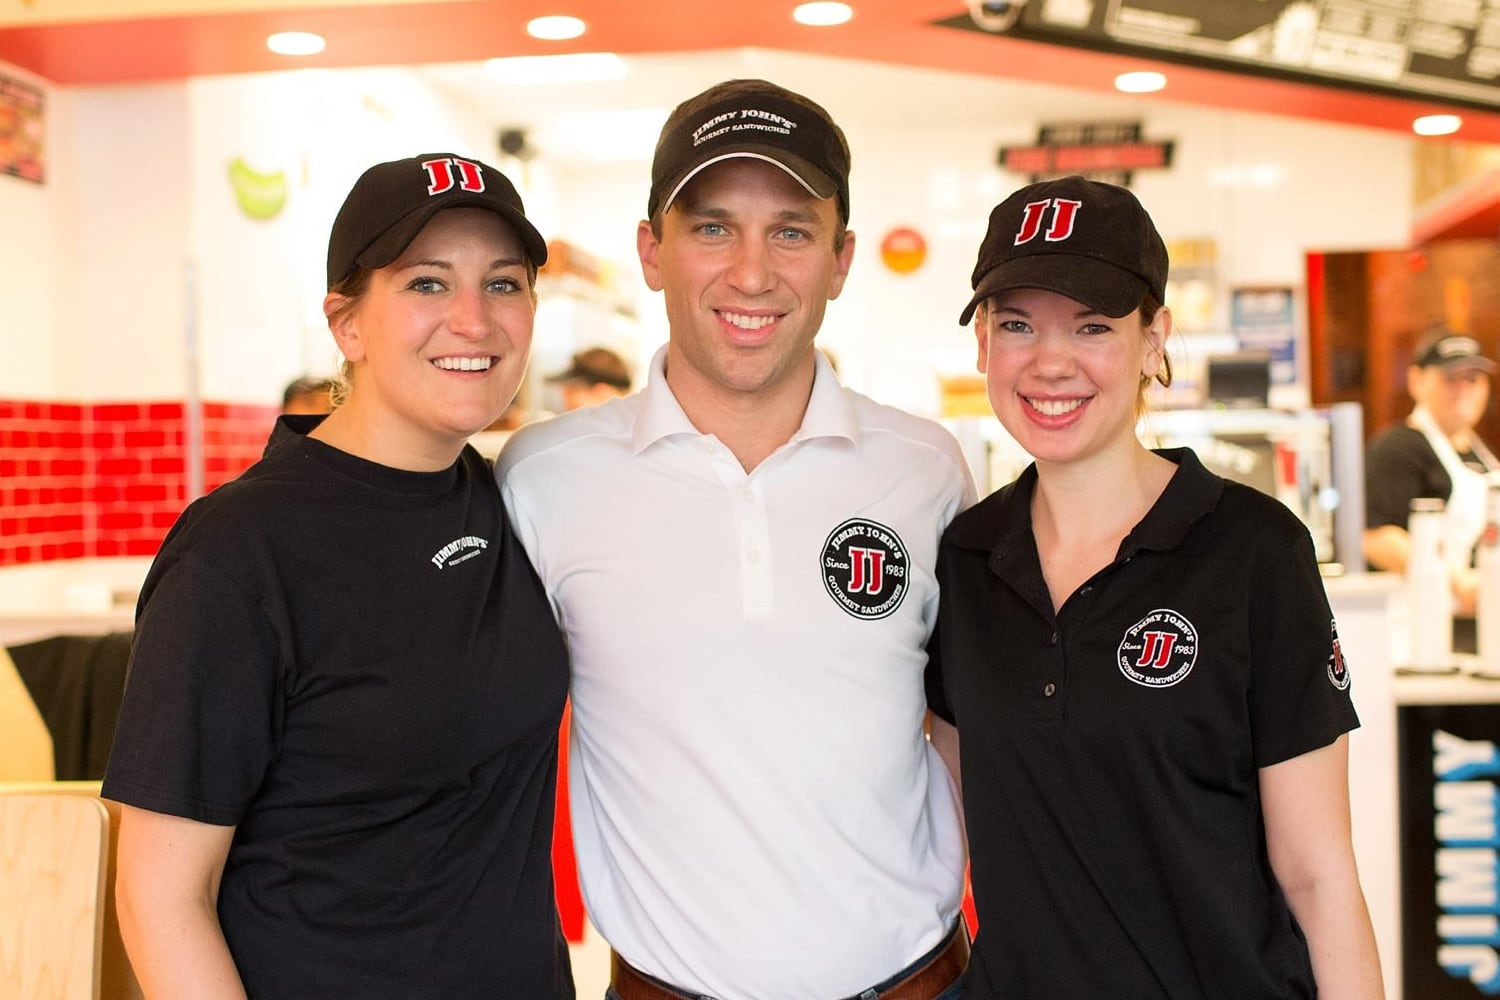 Jimmy John's franchise owner, Ben Stoltzfoos, with two employees